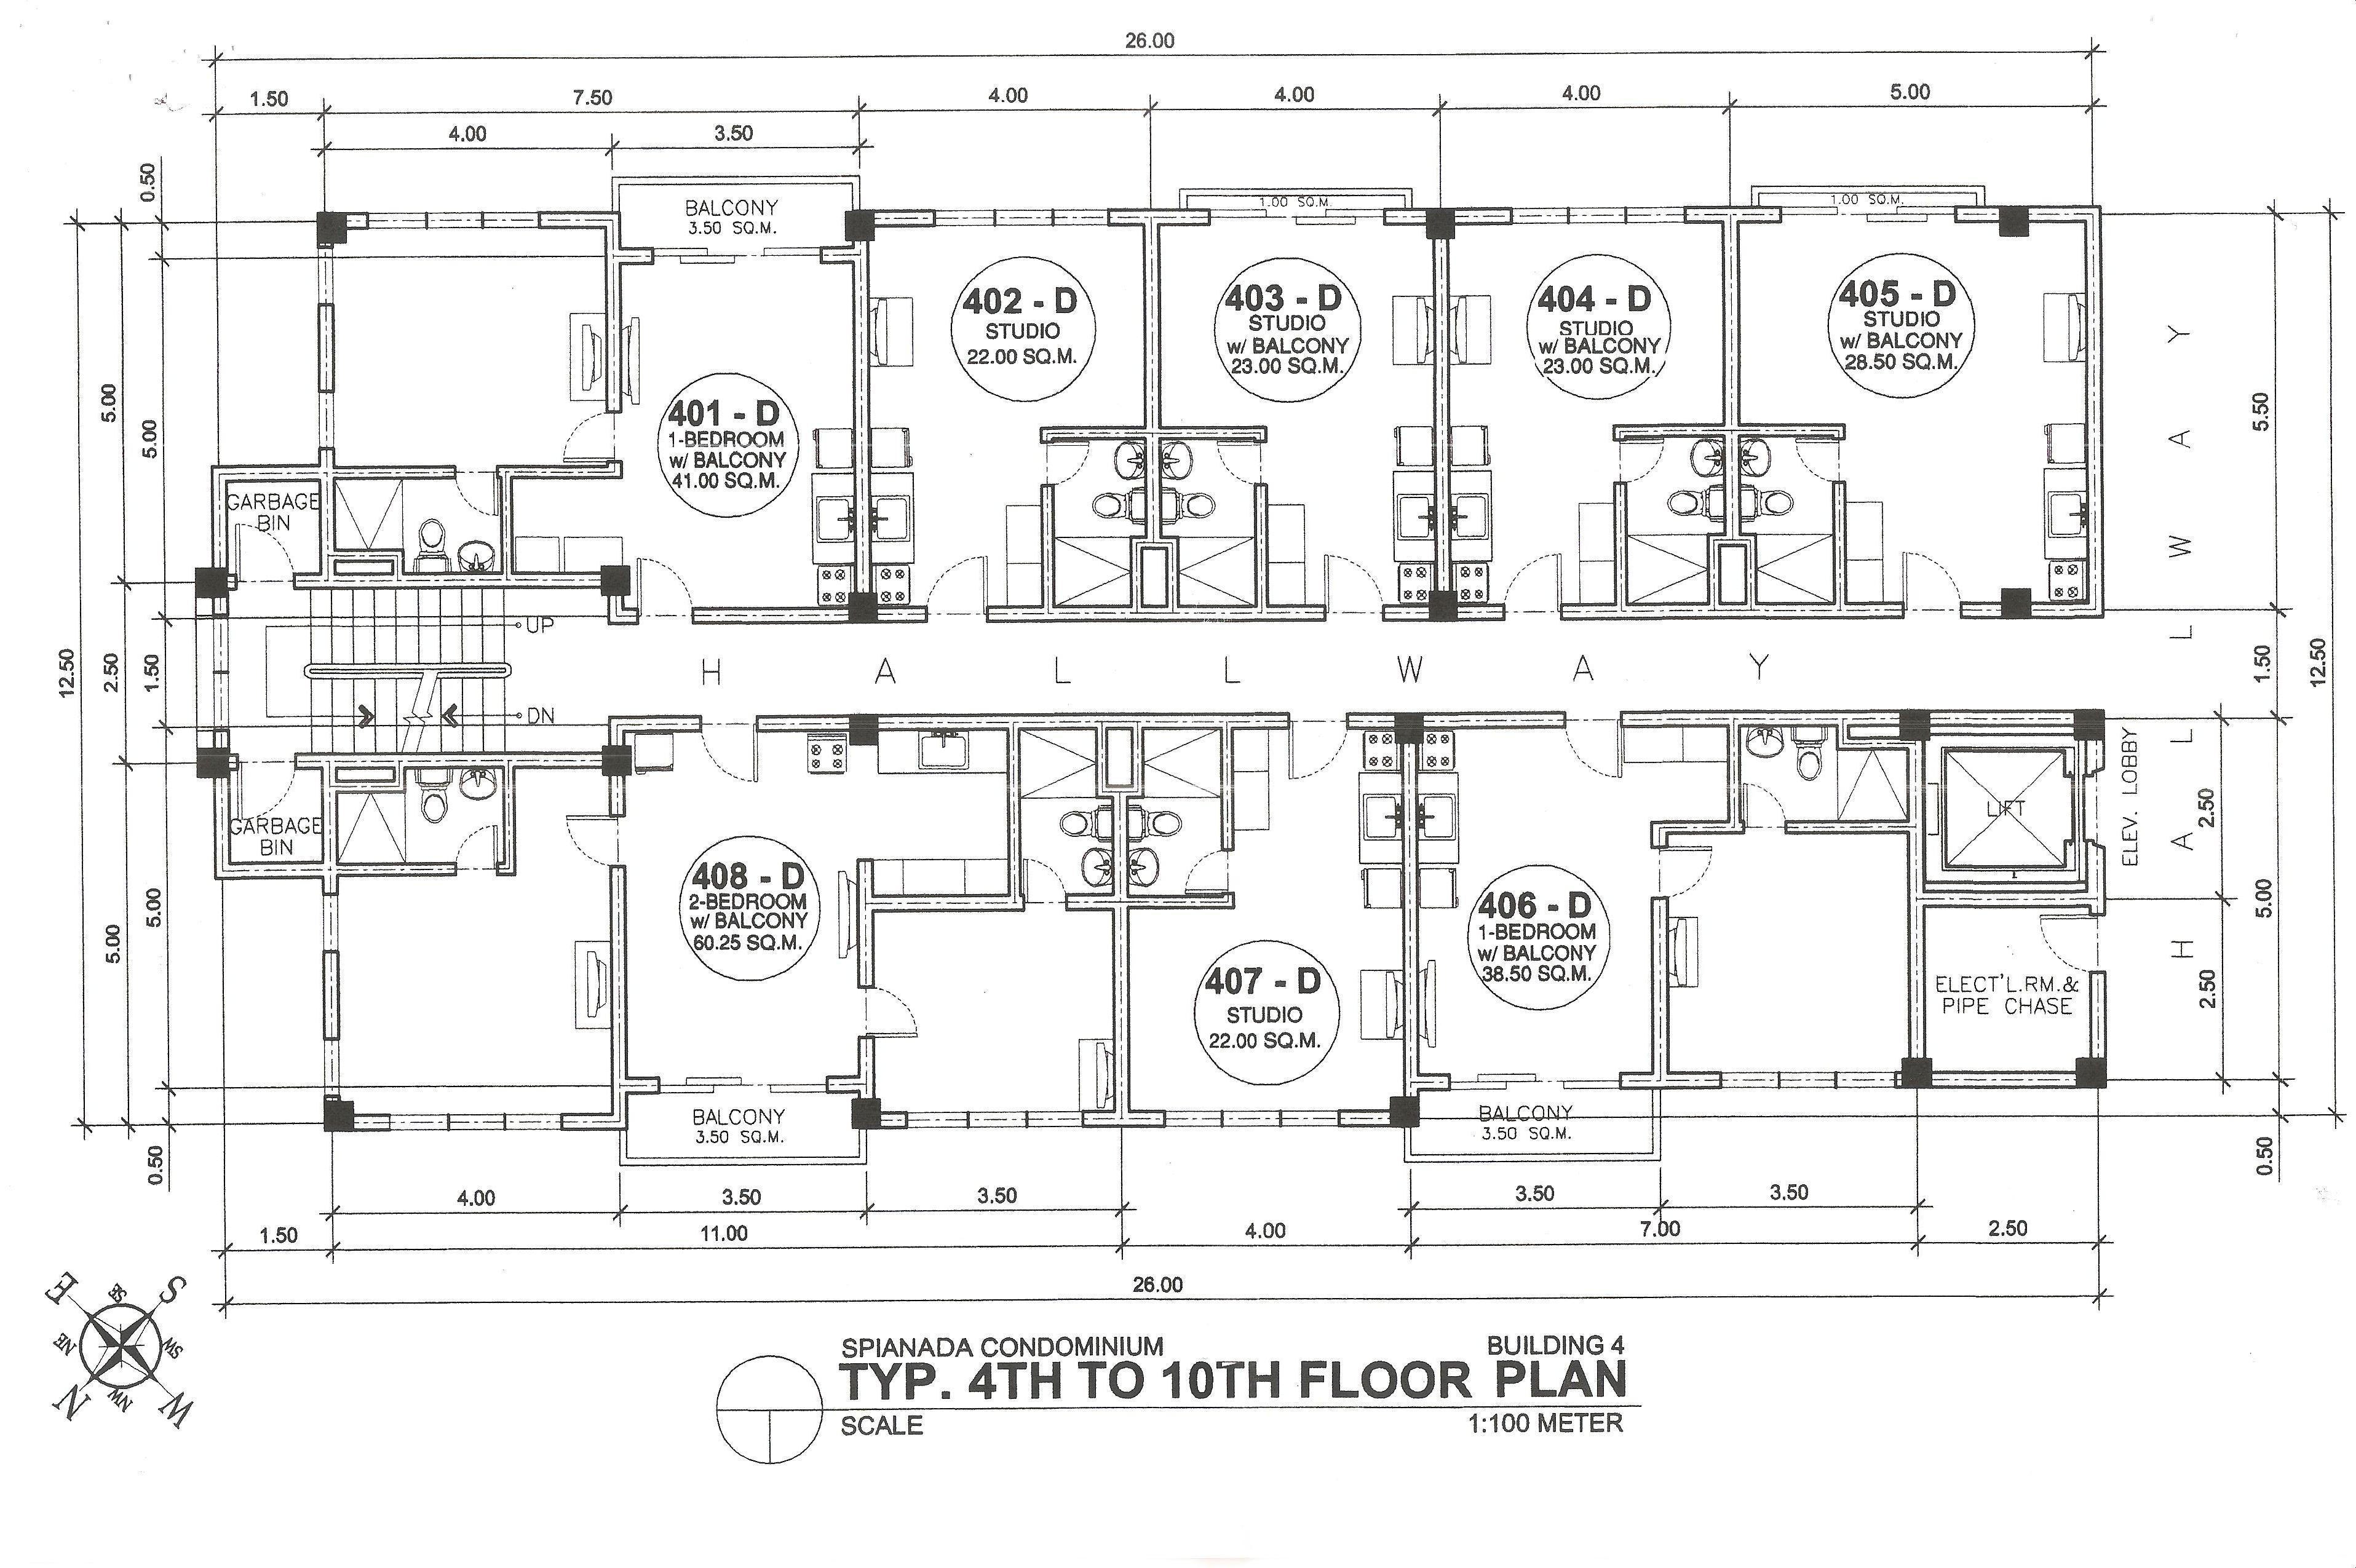 Building D 4th-10th Floor Plan